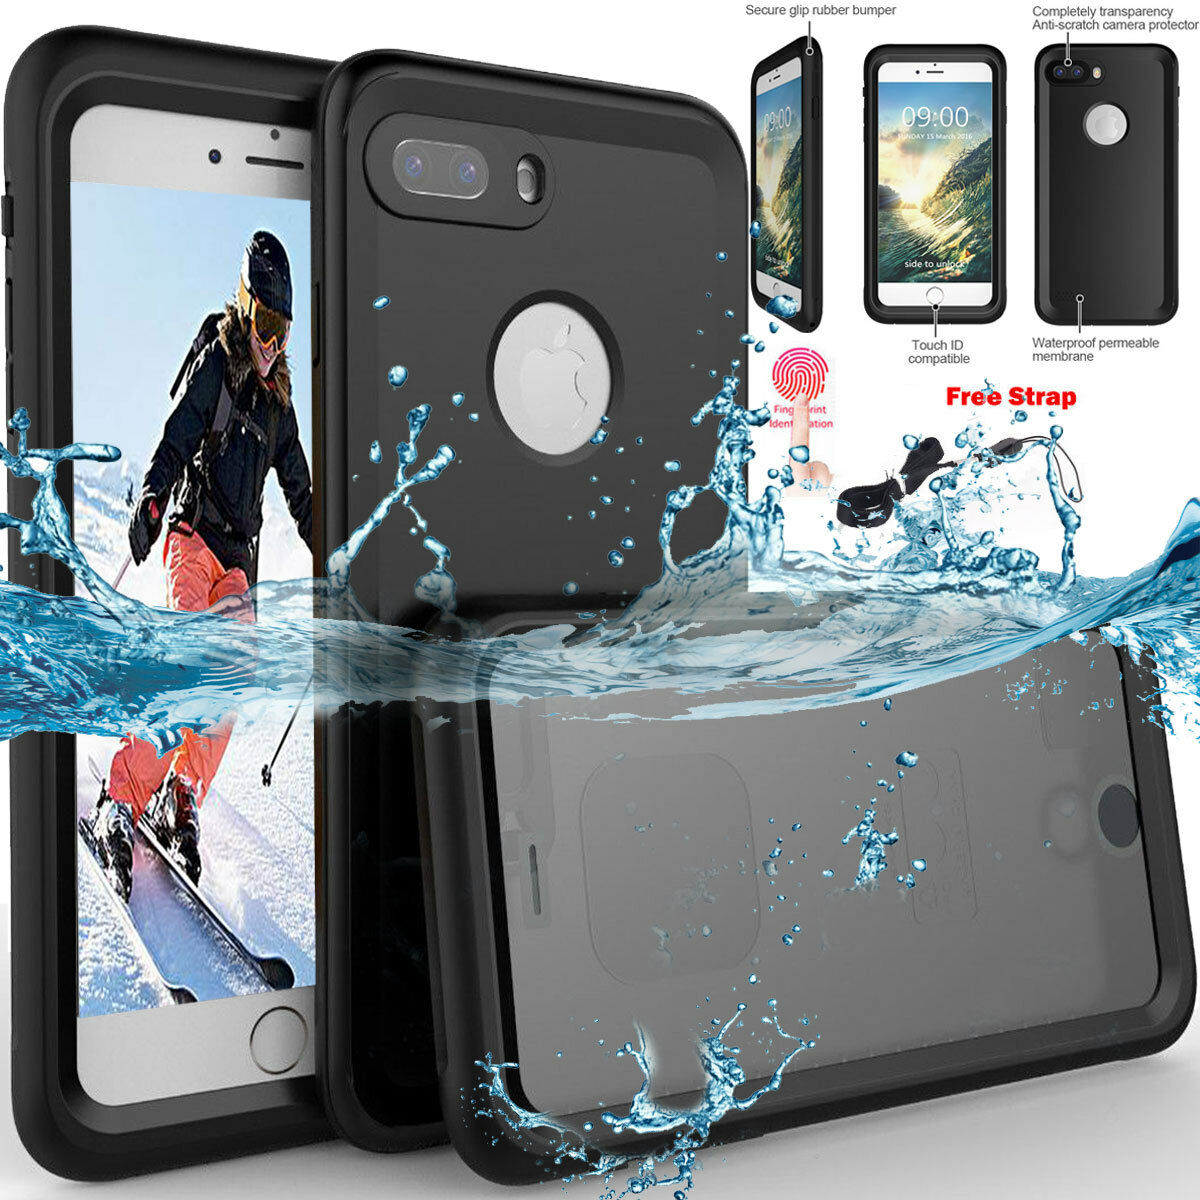 Slim Waterproof Shockproof Heavy Duty Hard Case Cover for iP